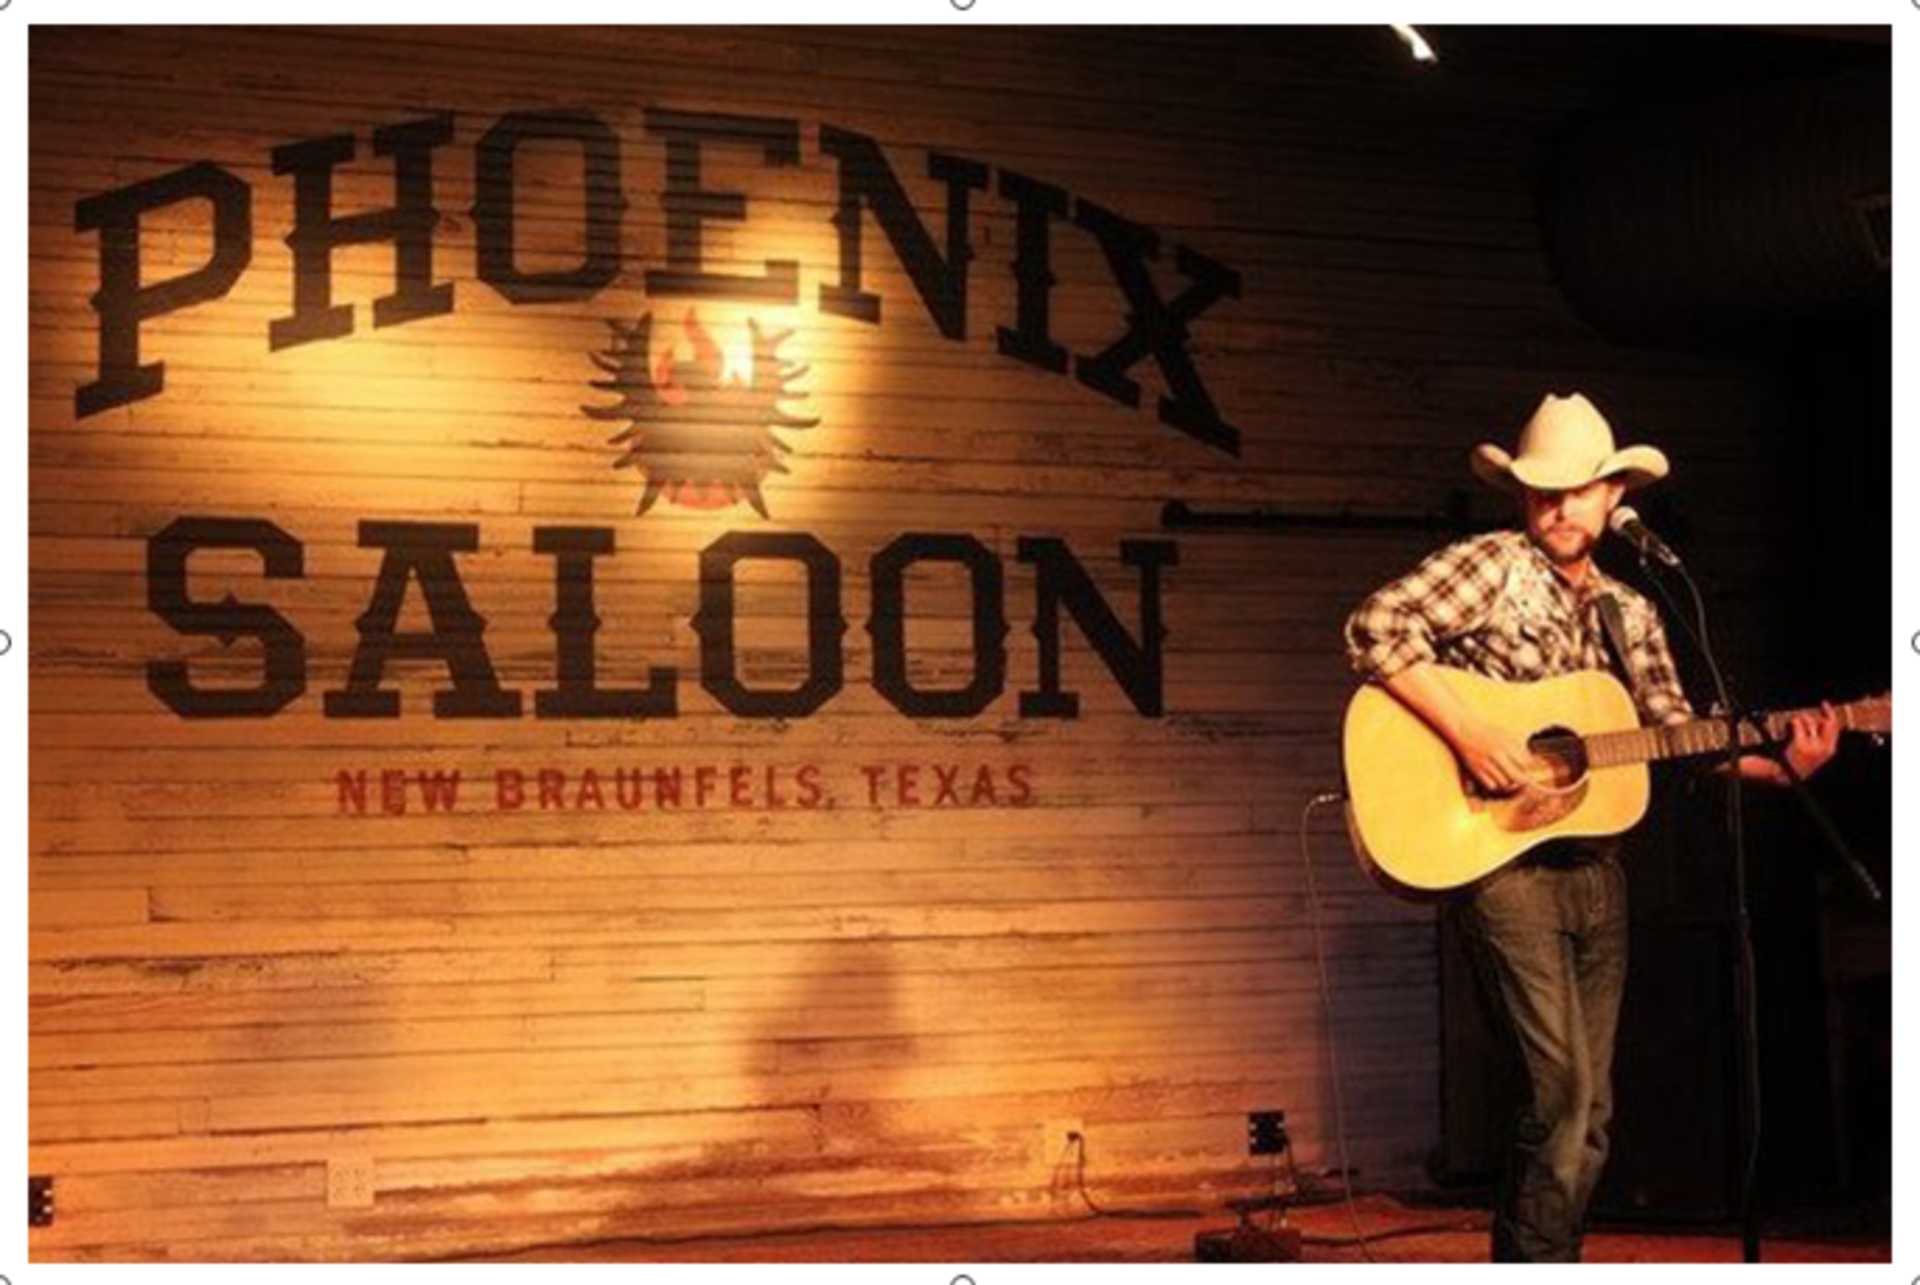 New Braunfels Entertainment:  The Phoenix Saloon